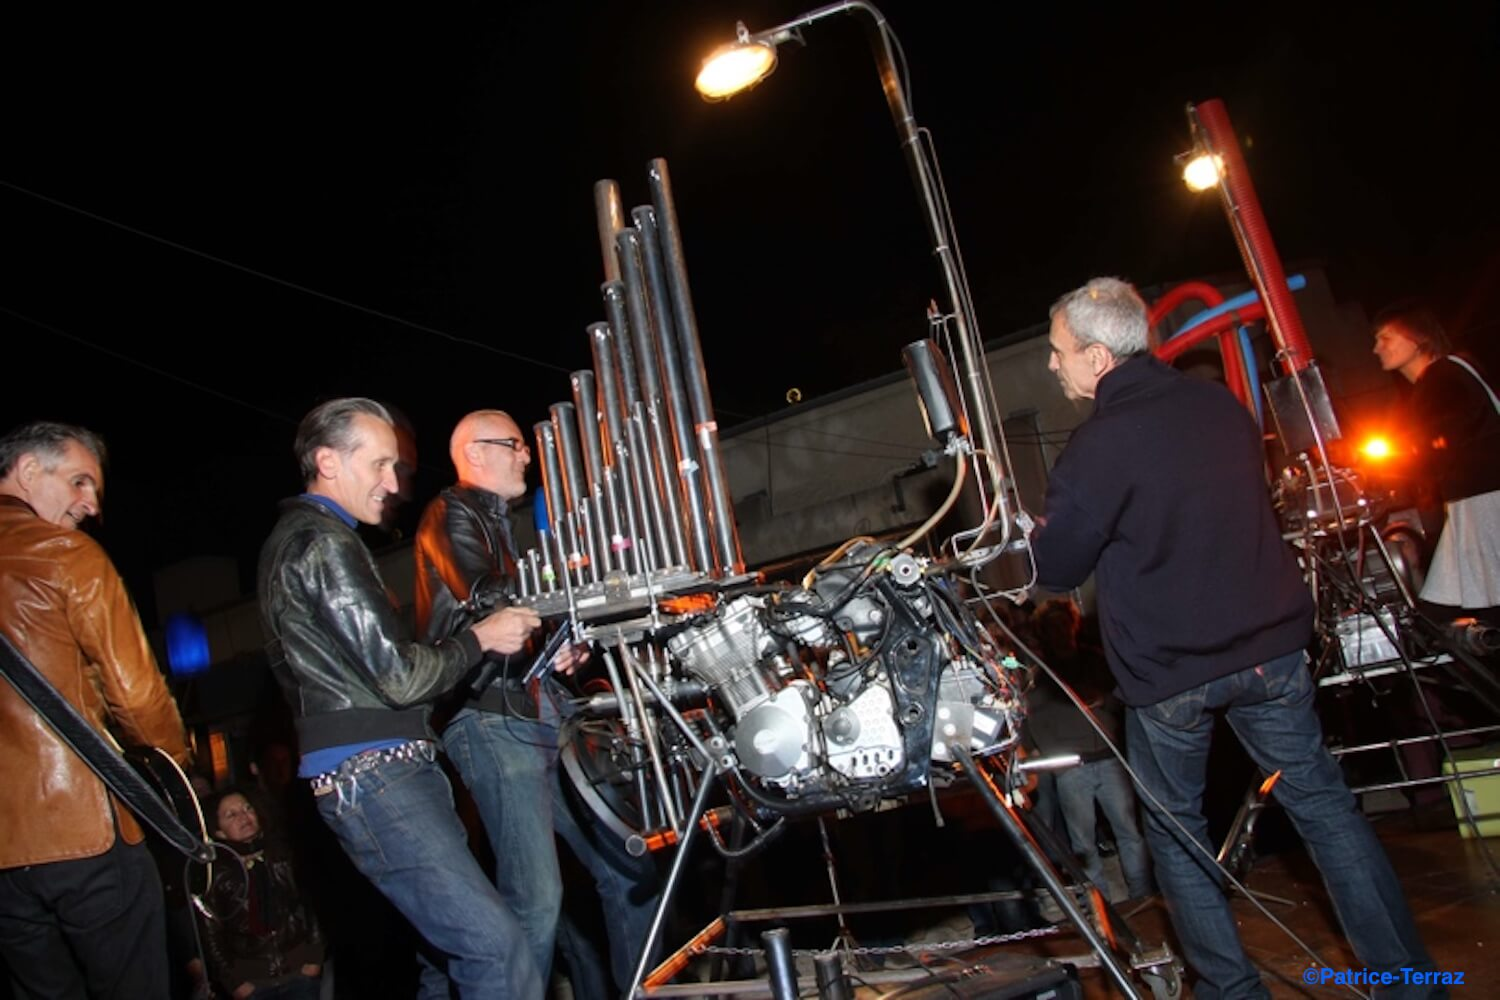 Motorgs : photo de spectacle plein air de nuit